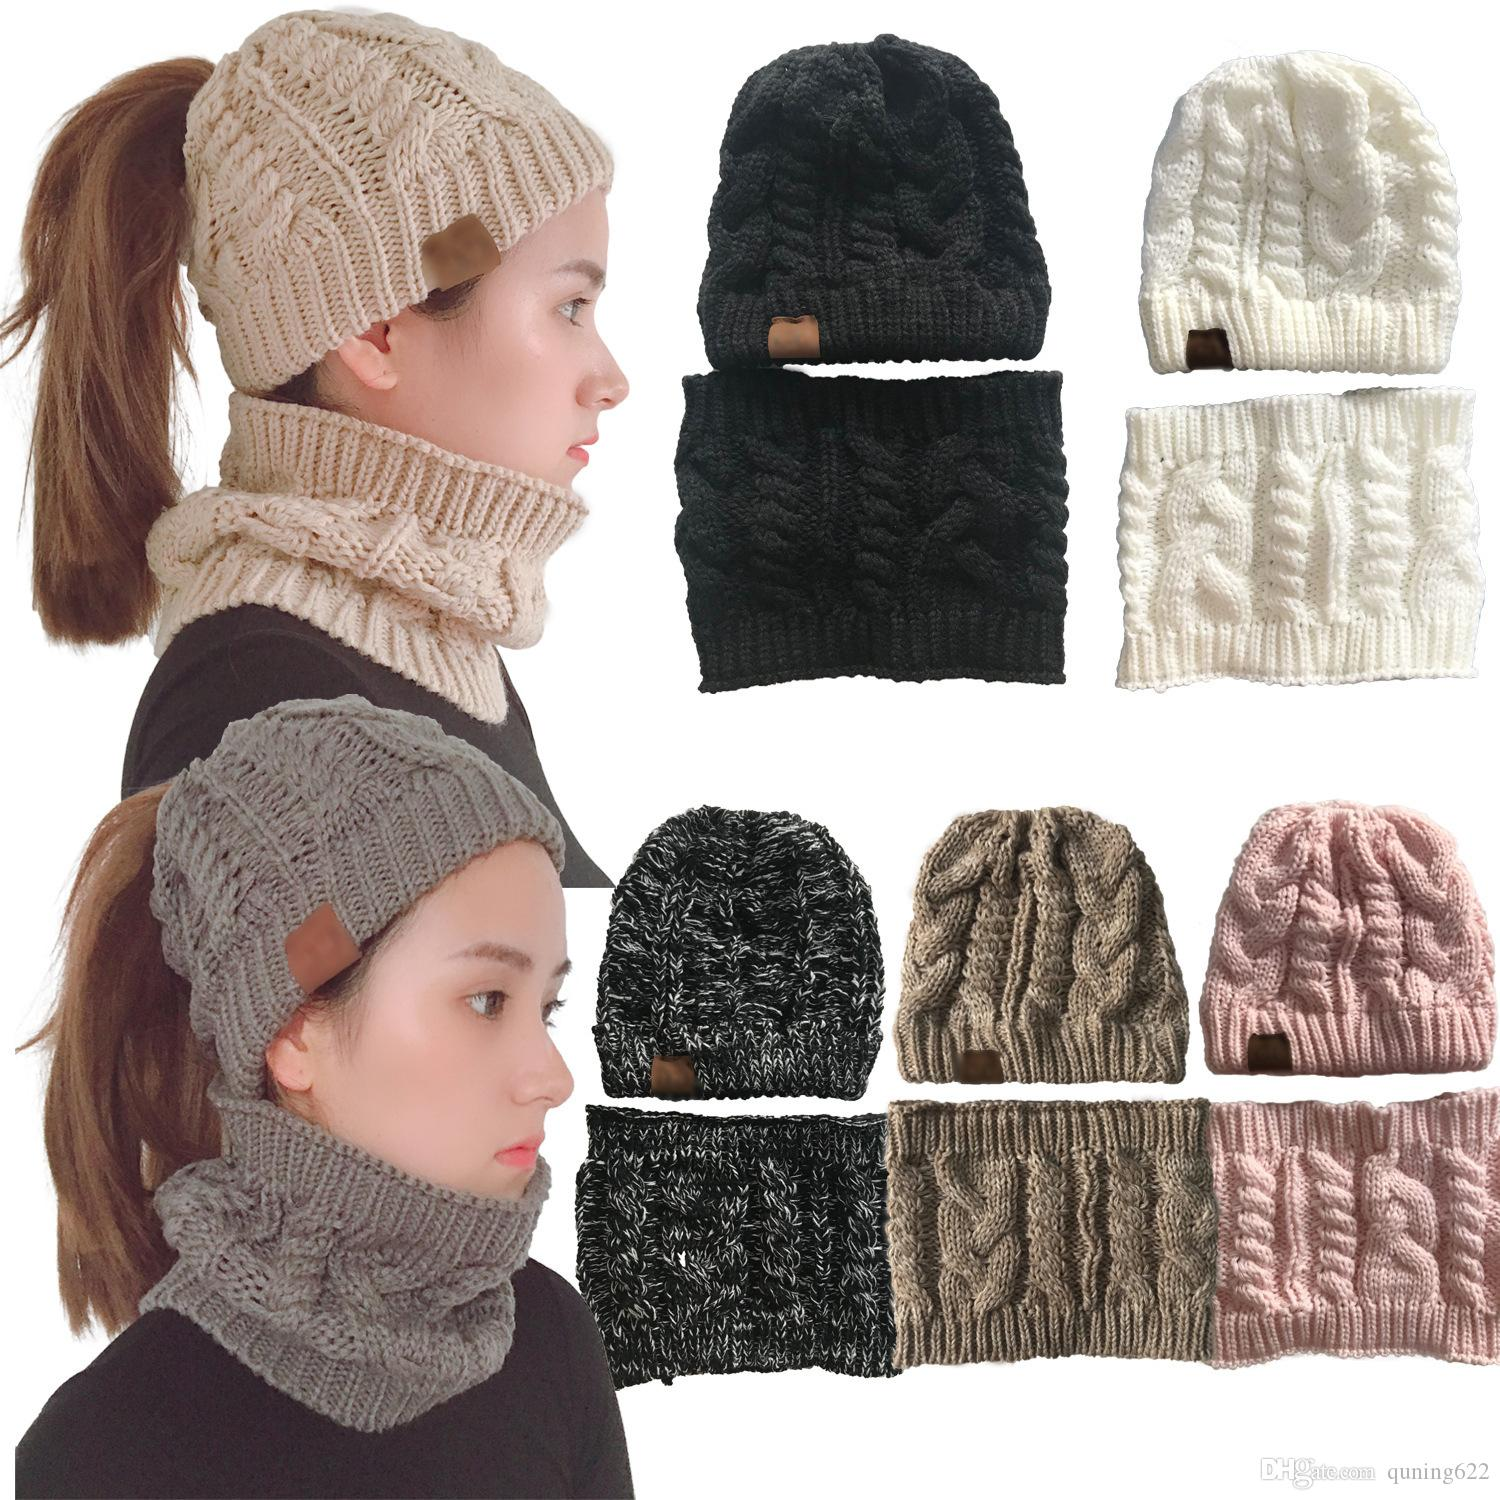 e117d8e6f New Knitted Winter Hat Scarf Set Women Beanies Scarf Female Knitted Caps  And Scarf 2 Pieces/Set For Girls Gift